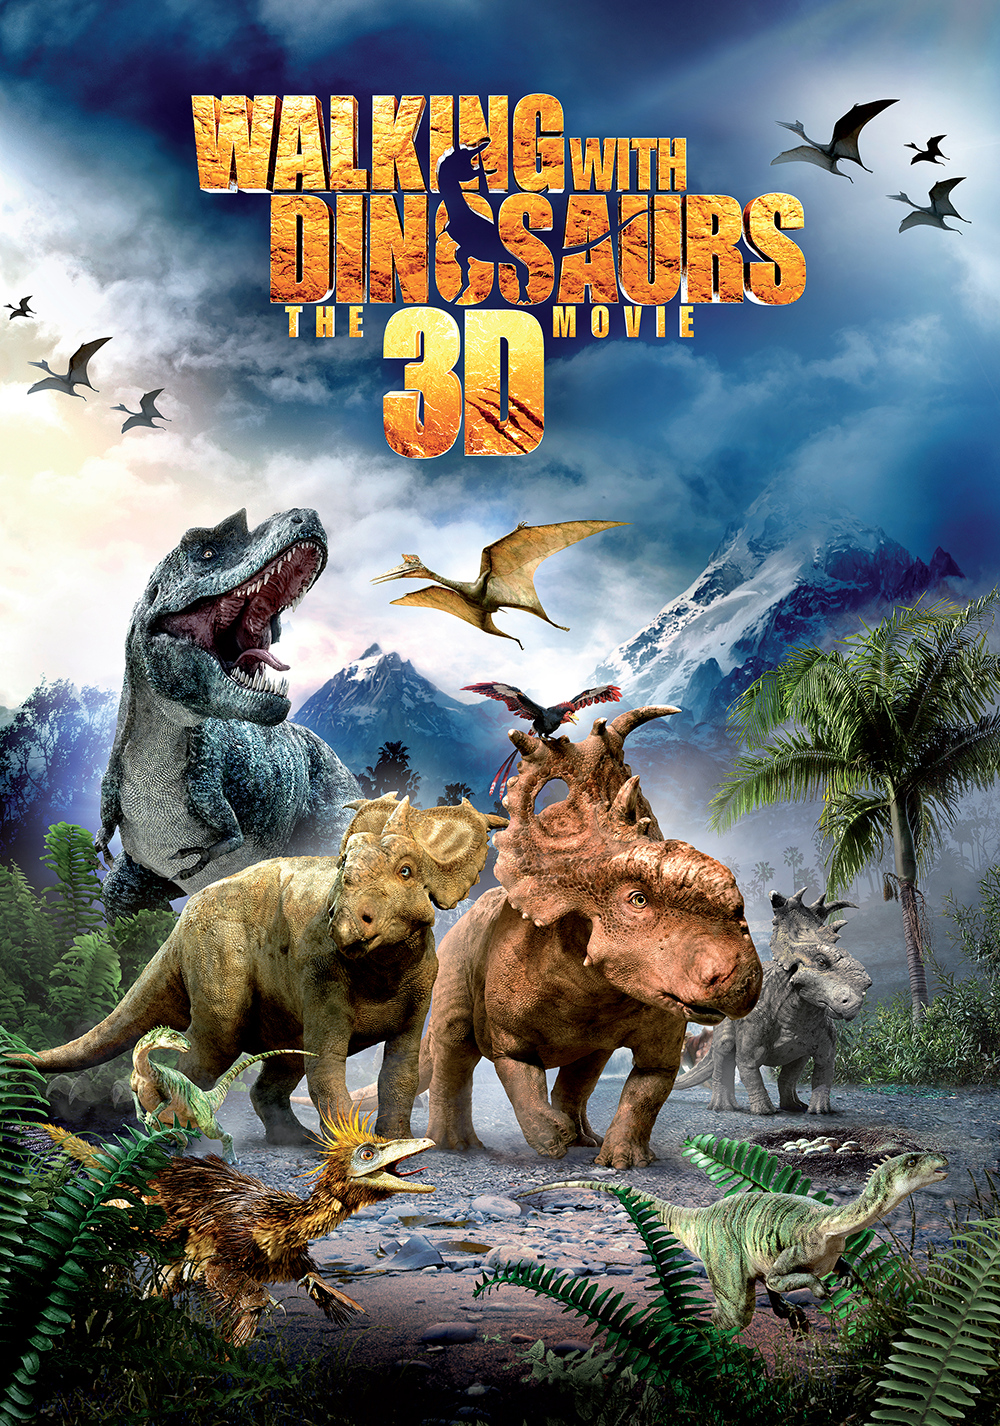 walking-with-dinosaurs-52dab8077af48.jpg